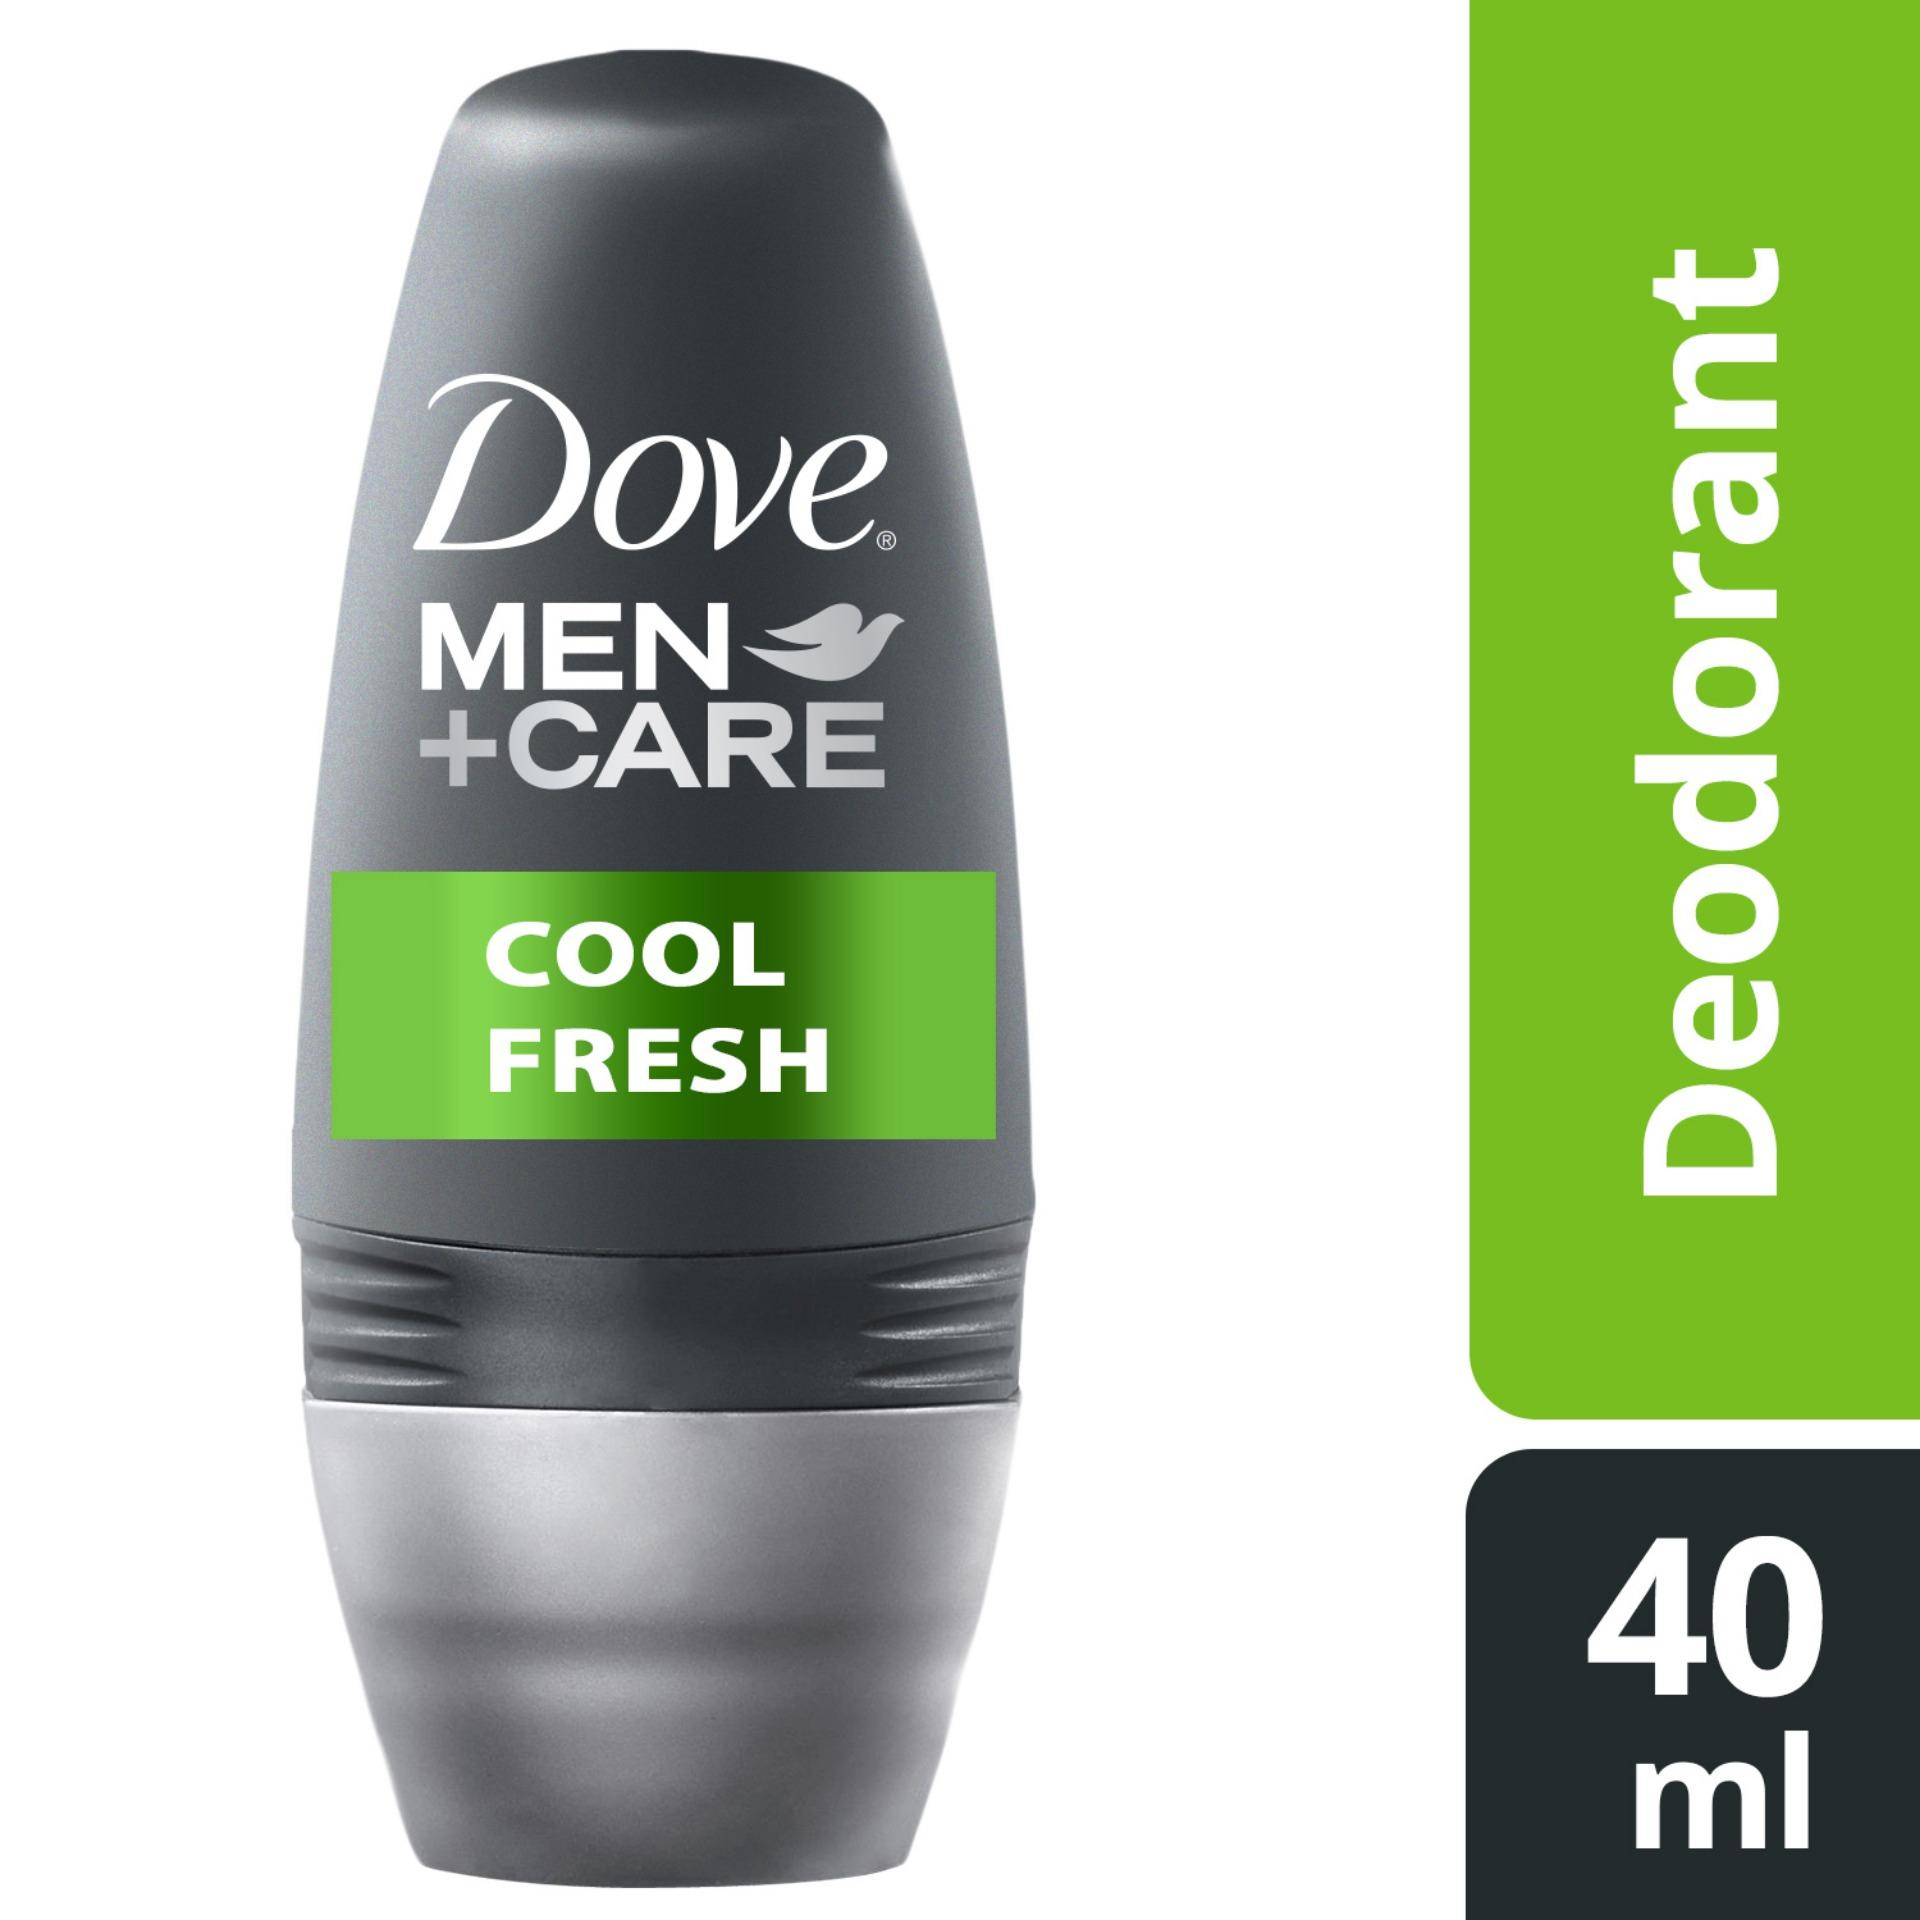 Dove Philippines Price List Soap Shampoo Deodorant Twin Pack Go Fresh Revive Body Wash Pump 550ml Men Roll On Extra 40ml